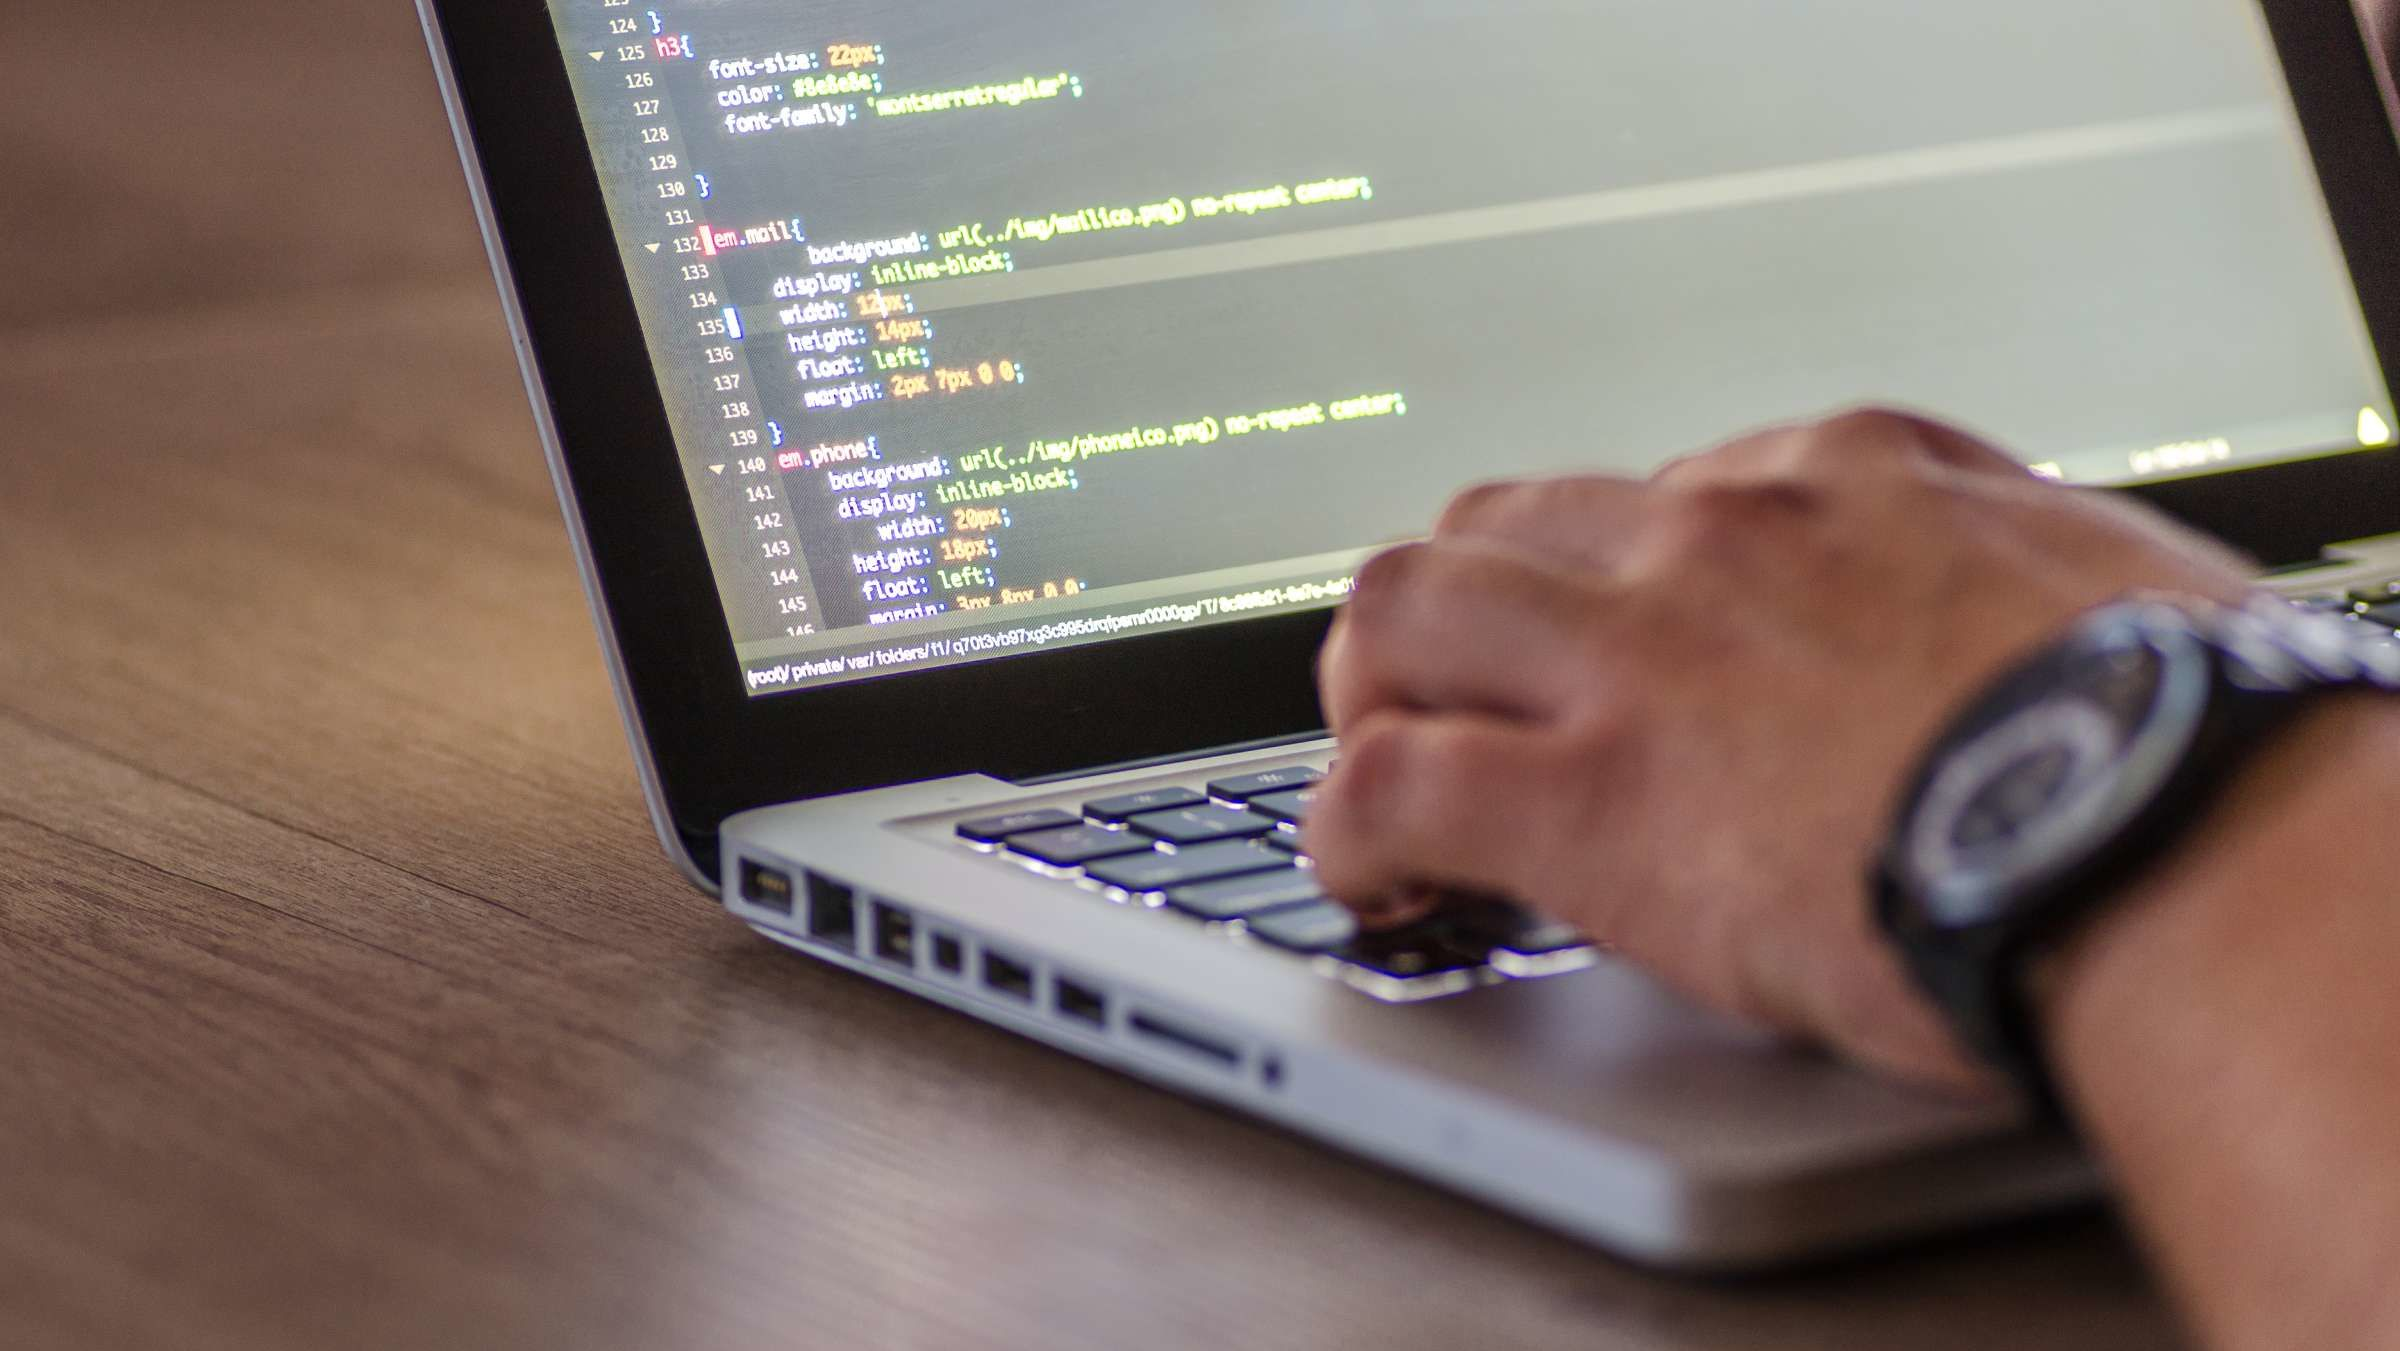 Want to Learn Coding? These 10 Online Courses Can Get You Started